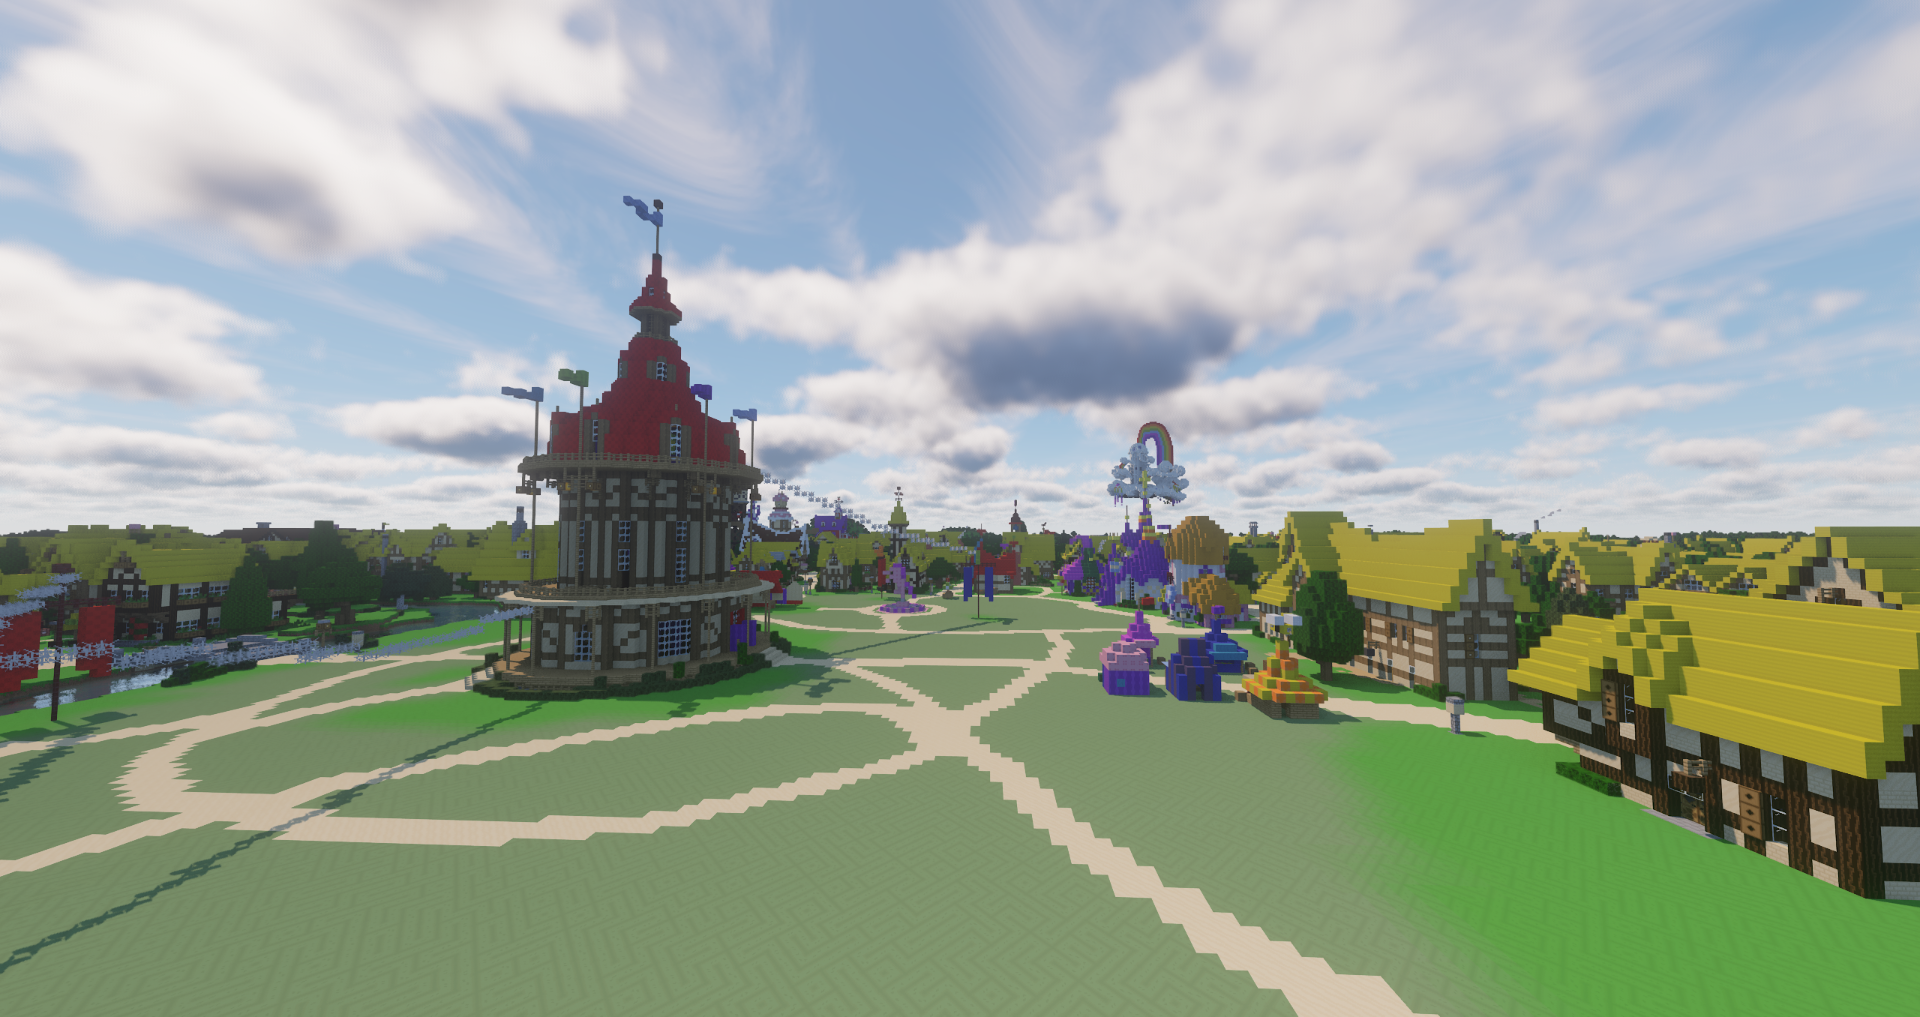 A recreation of Ponyville on the Brohoof server